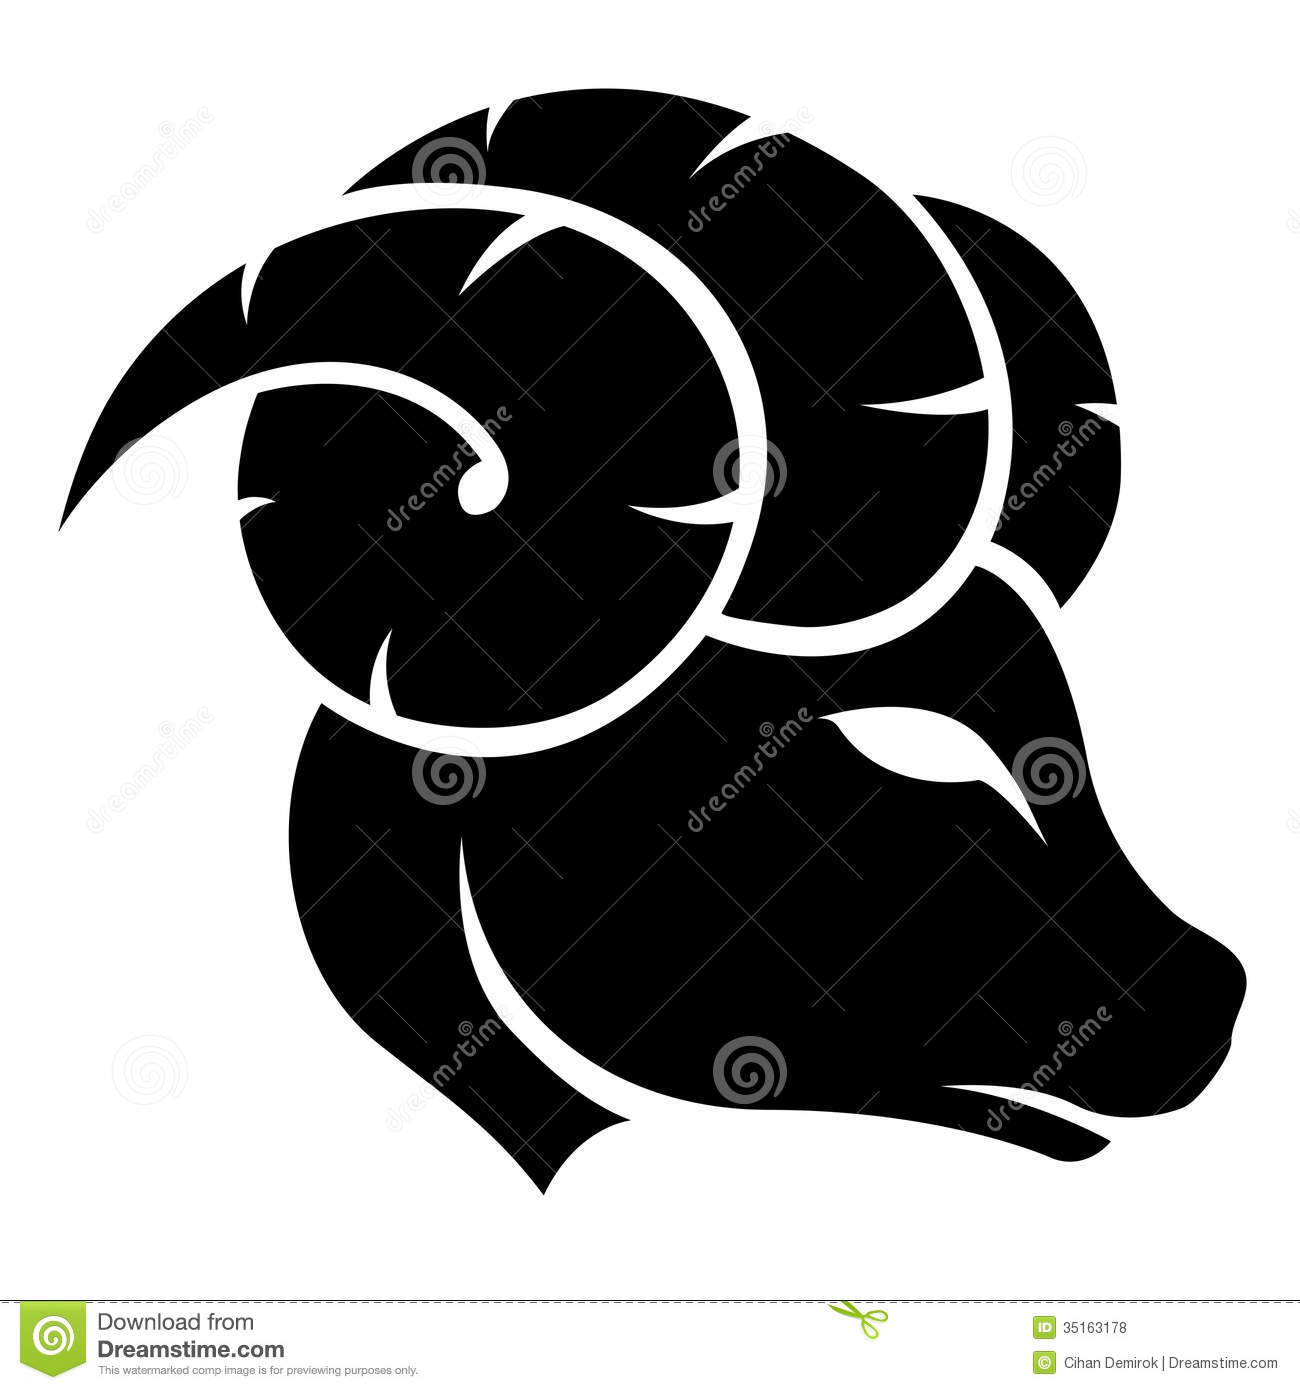 Illustration of Black Aries Zodiac Star Sign isolated on a white ...